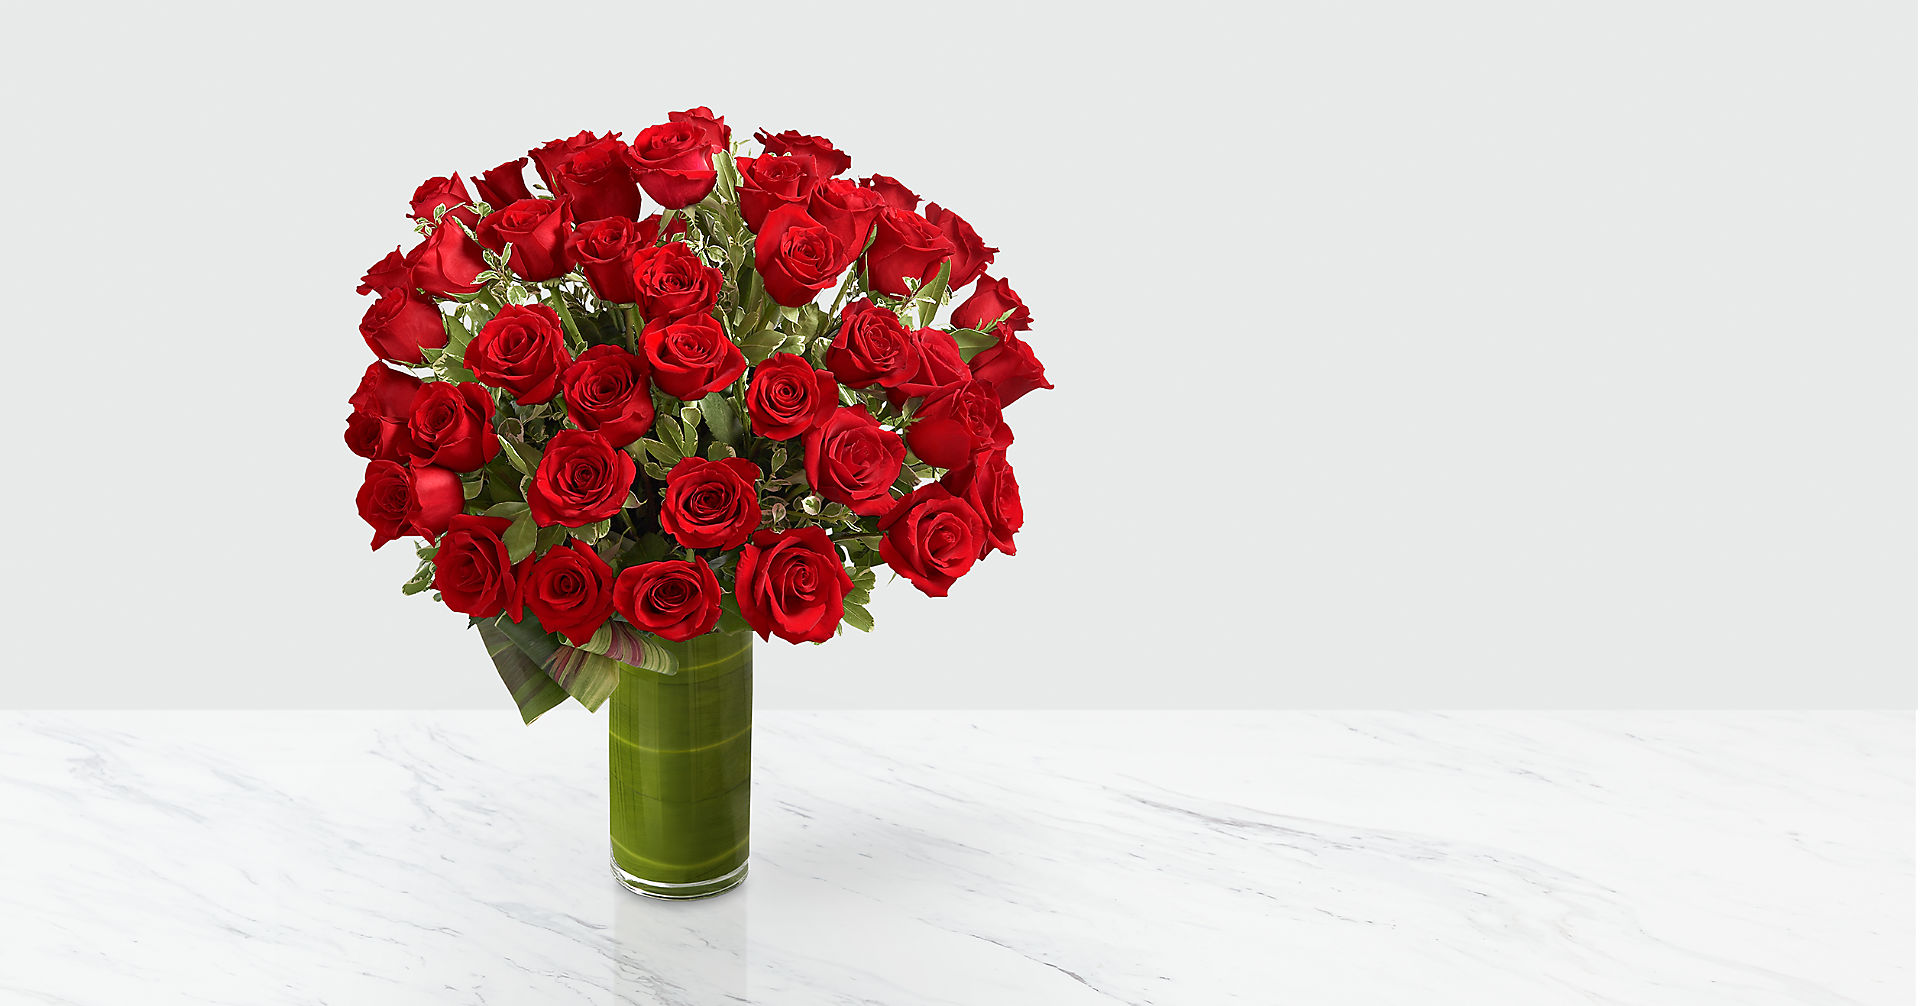 Fate Luxury Rose Bouquet - 48 Stems of 24-inch Premium Long-Stemmed Roses - Image 1 Of 5